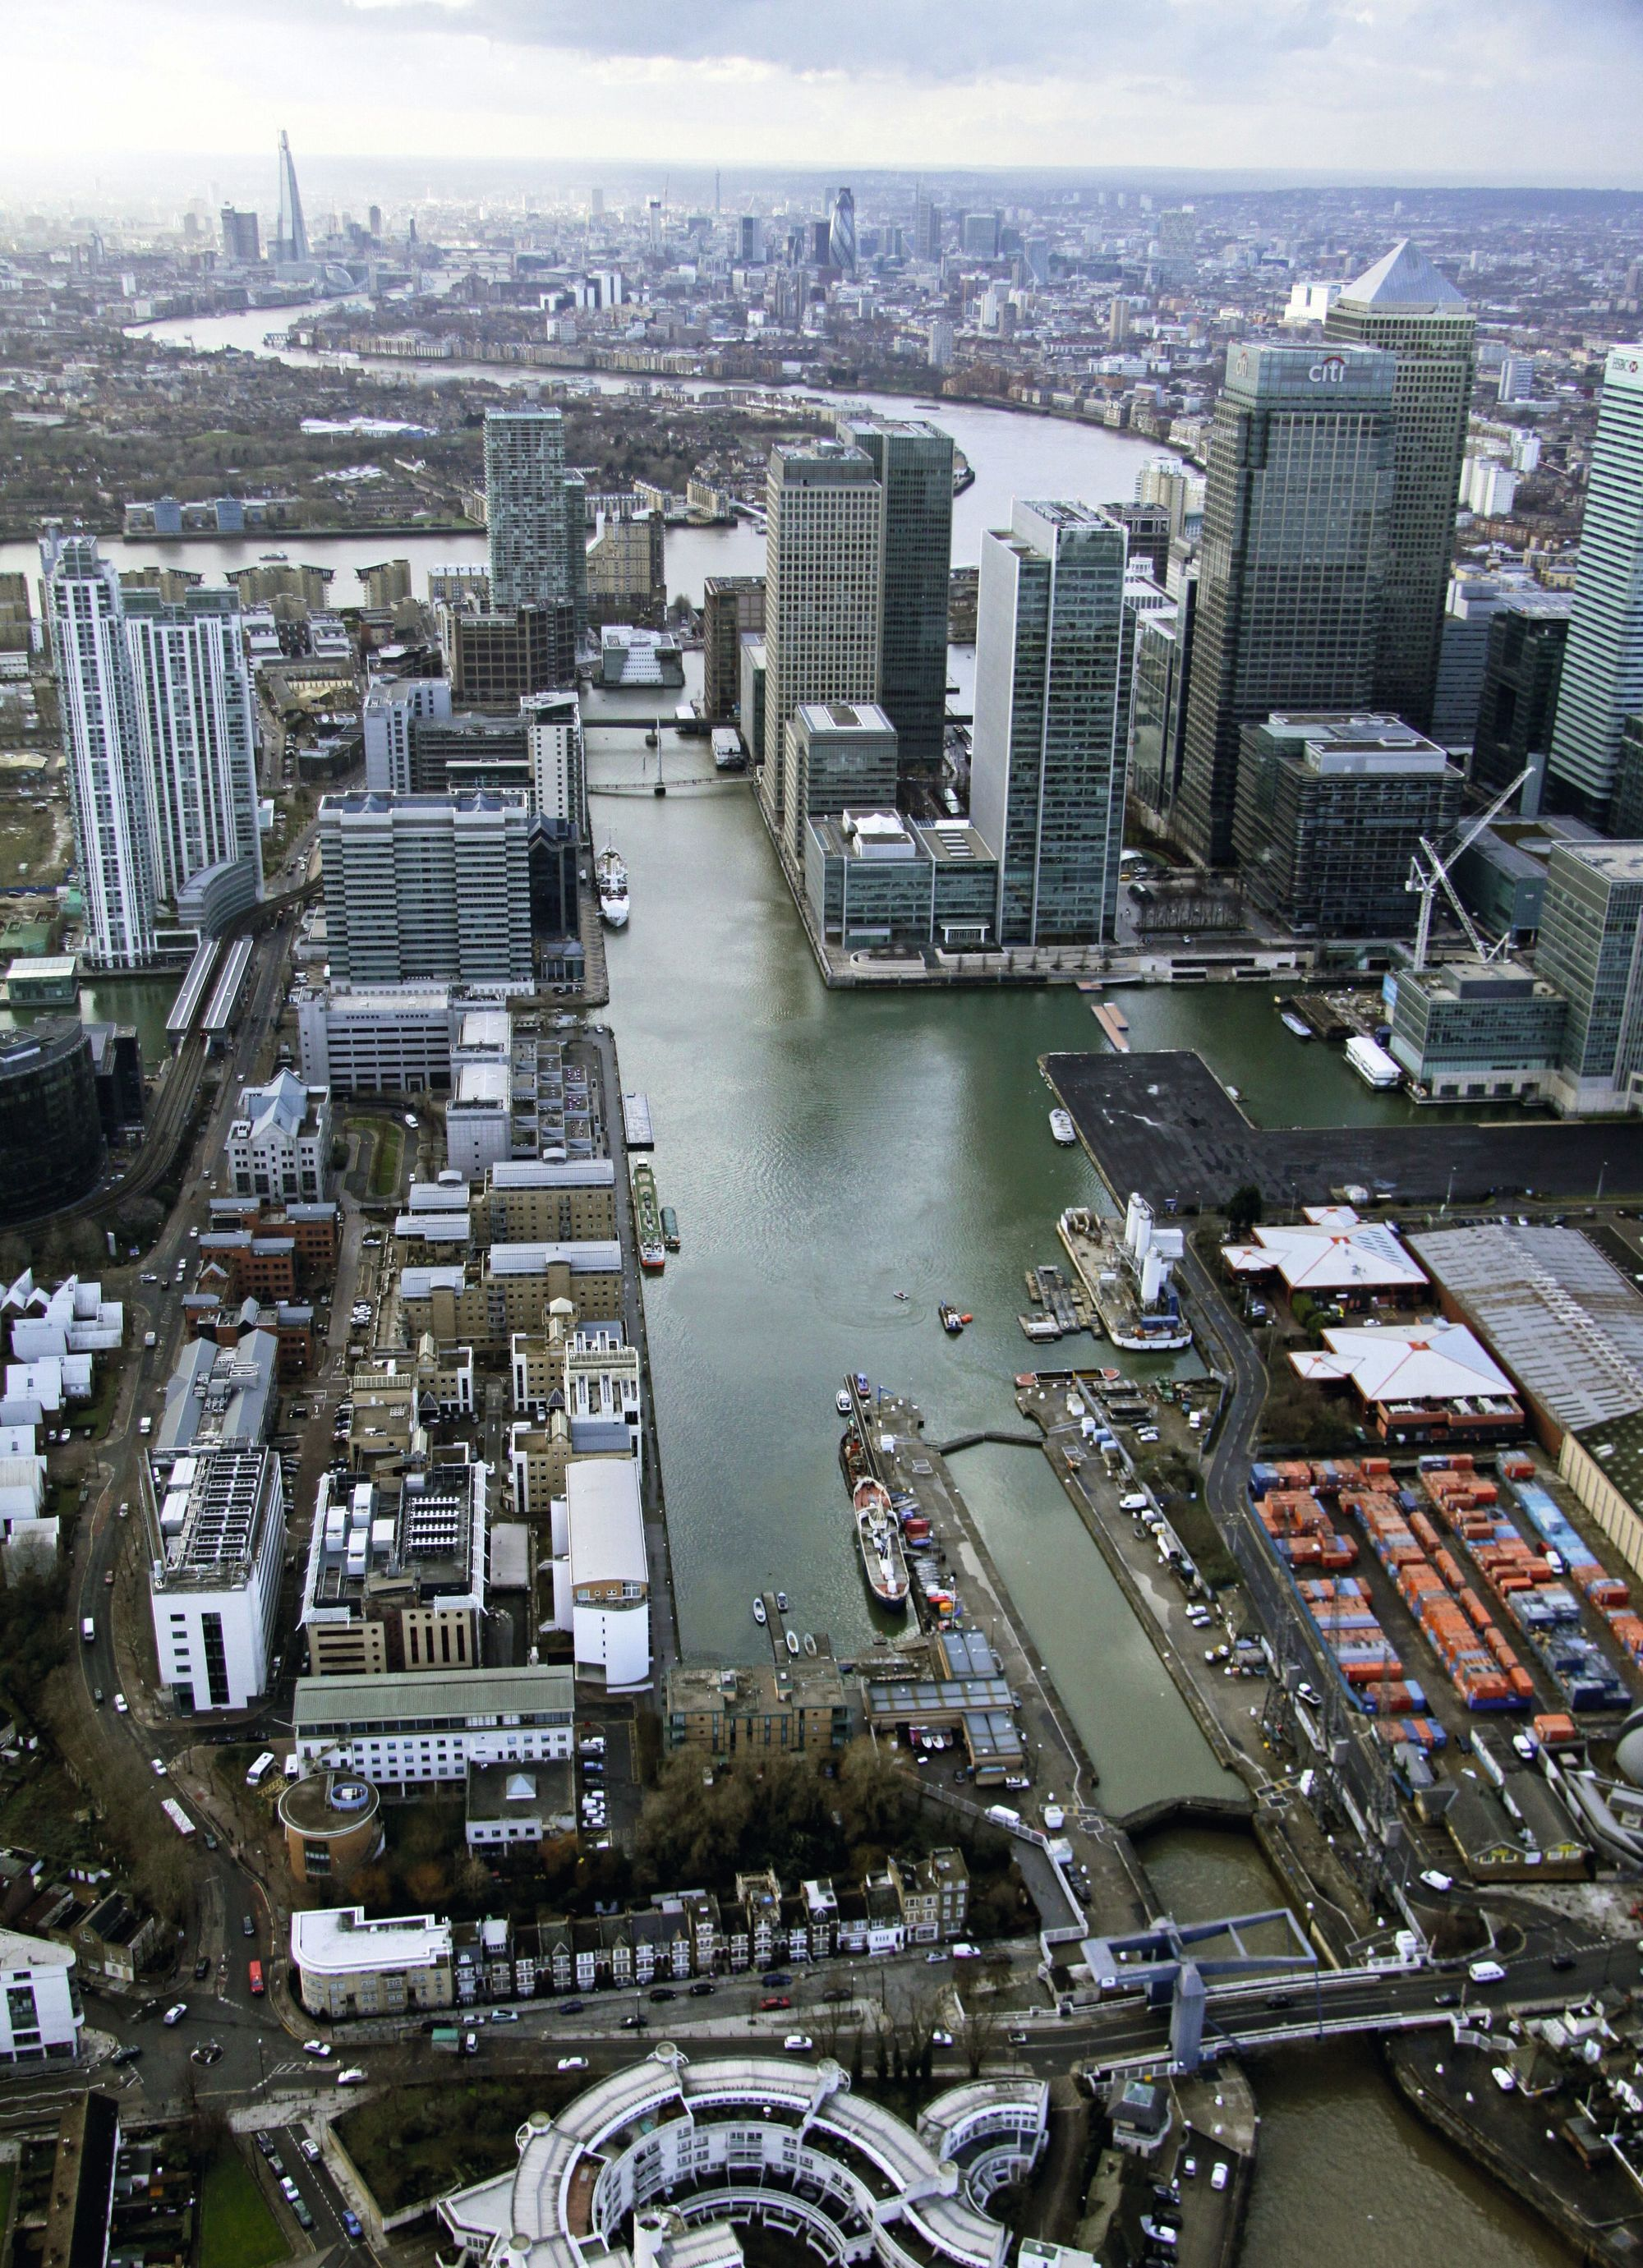 Le réaménagement des Docklands de Canary Wharf